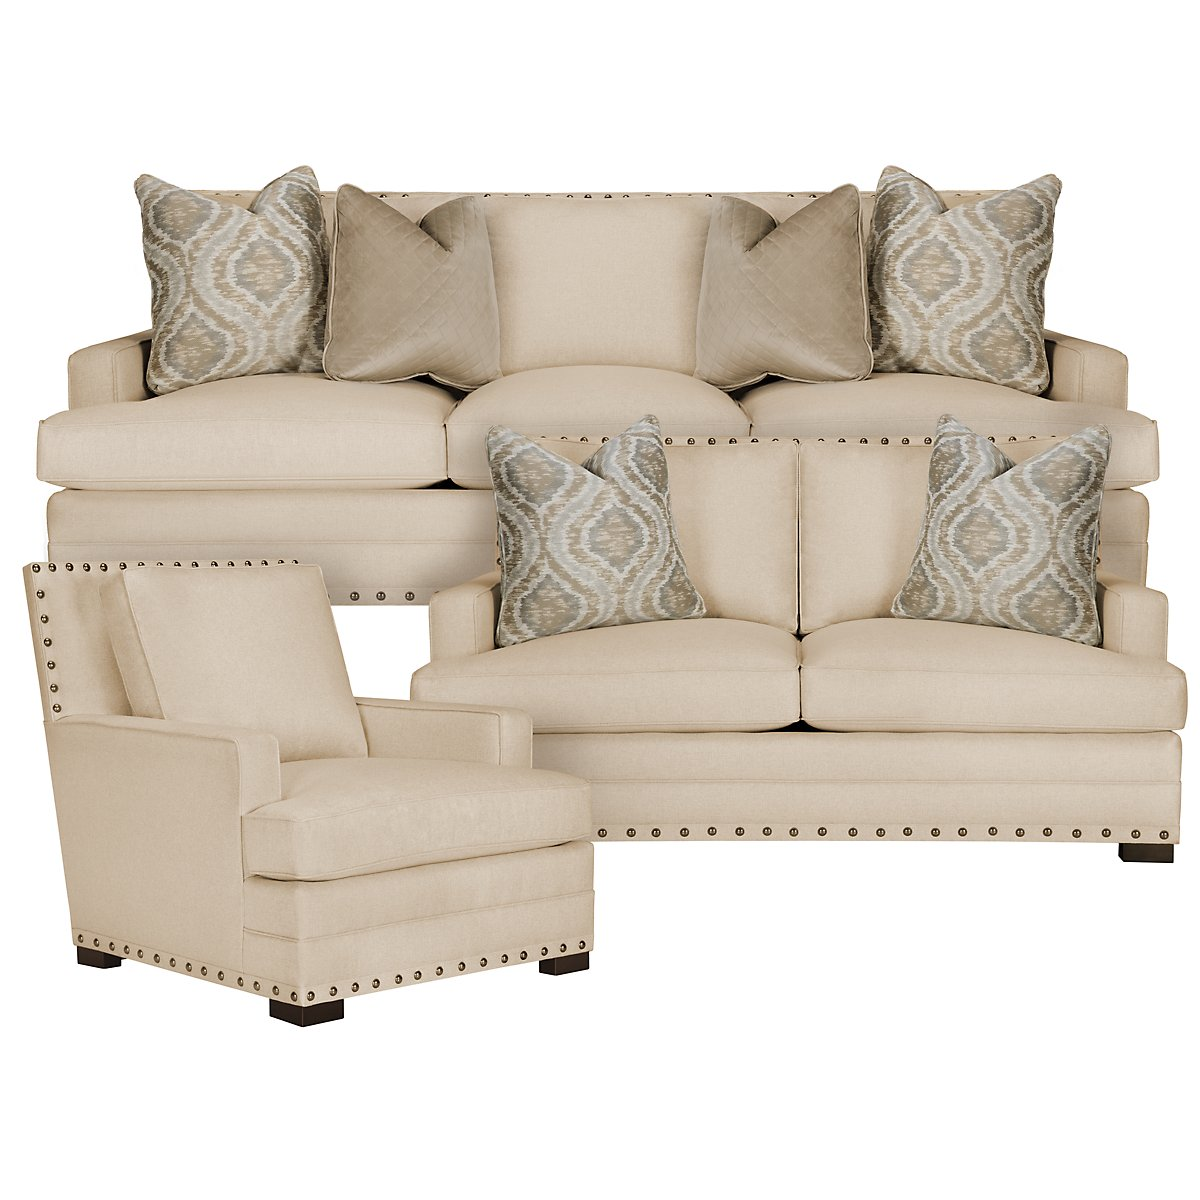 Bernhardt cantor sofa sofa bernhardt thesofa for Bernhardt furniture